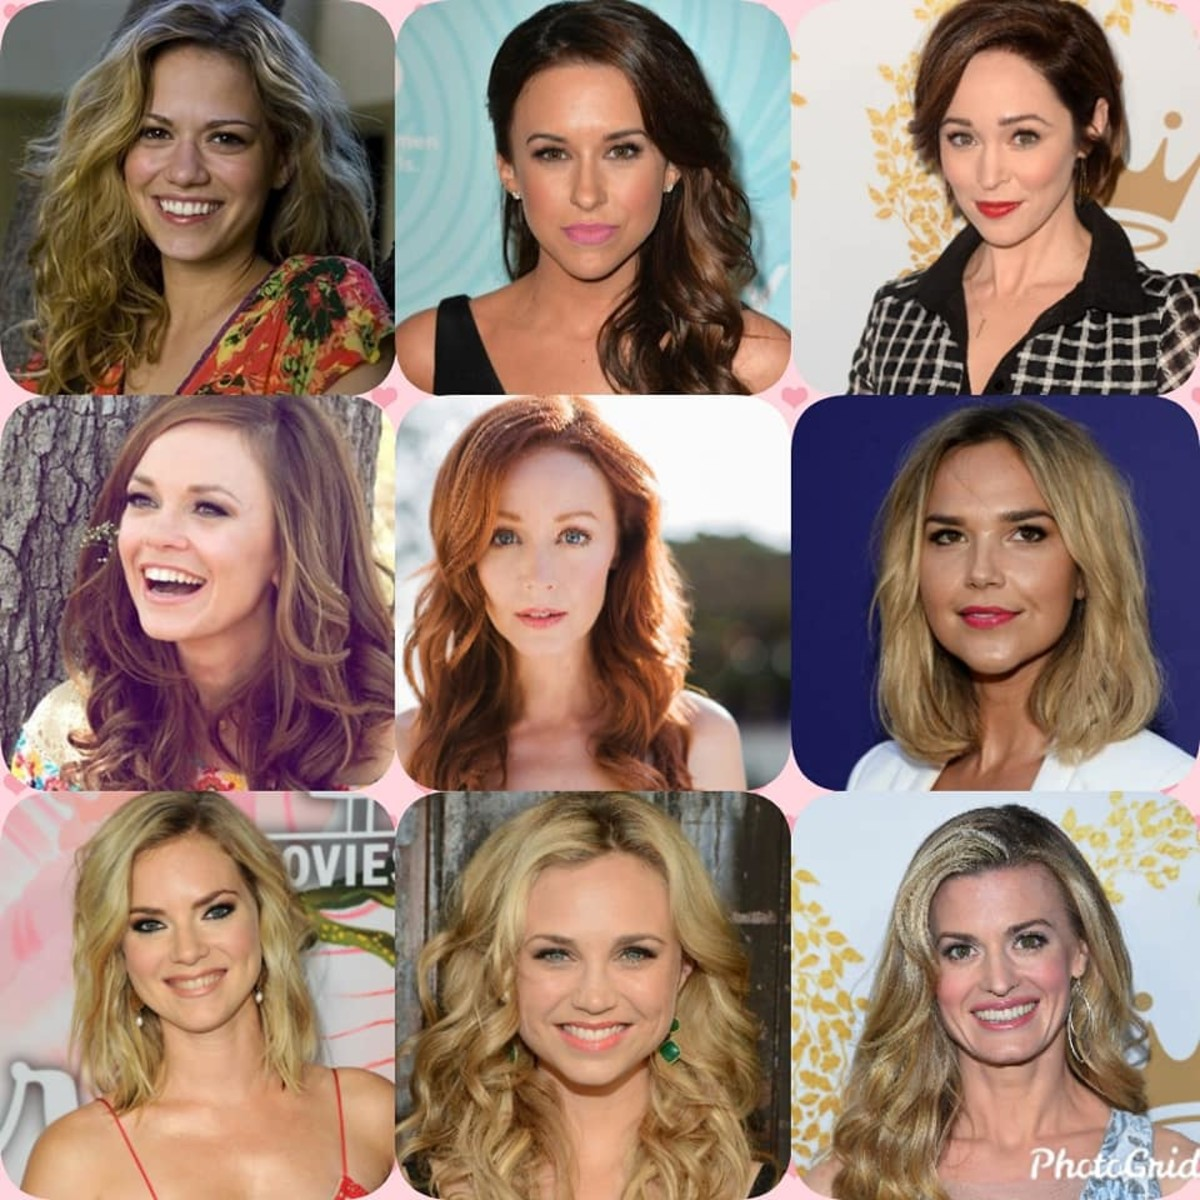 Here are some of the popular Hallmark movie actresses